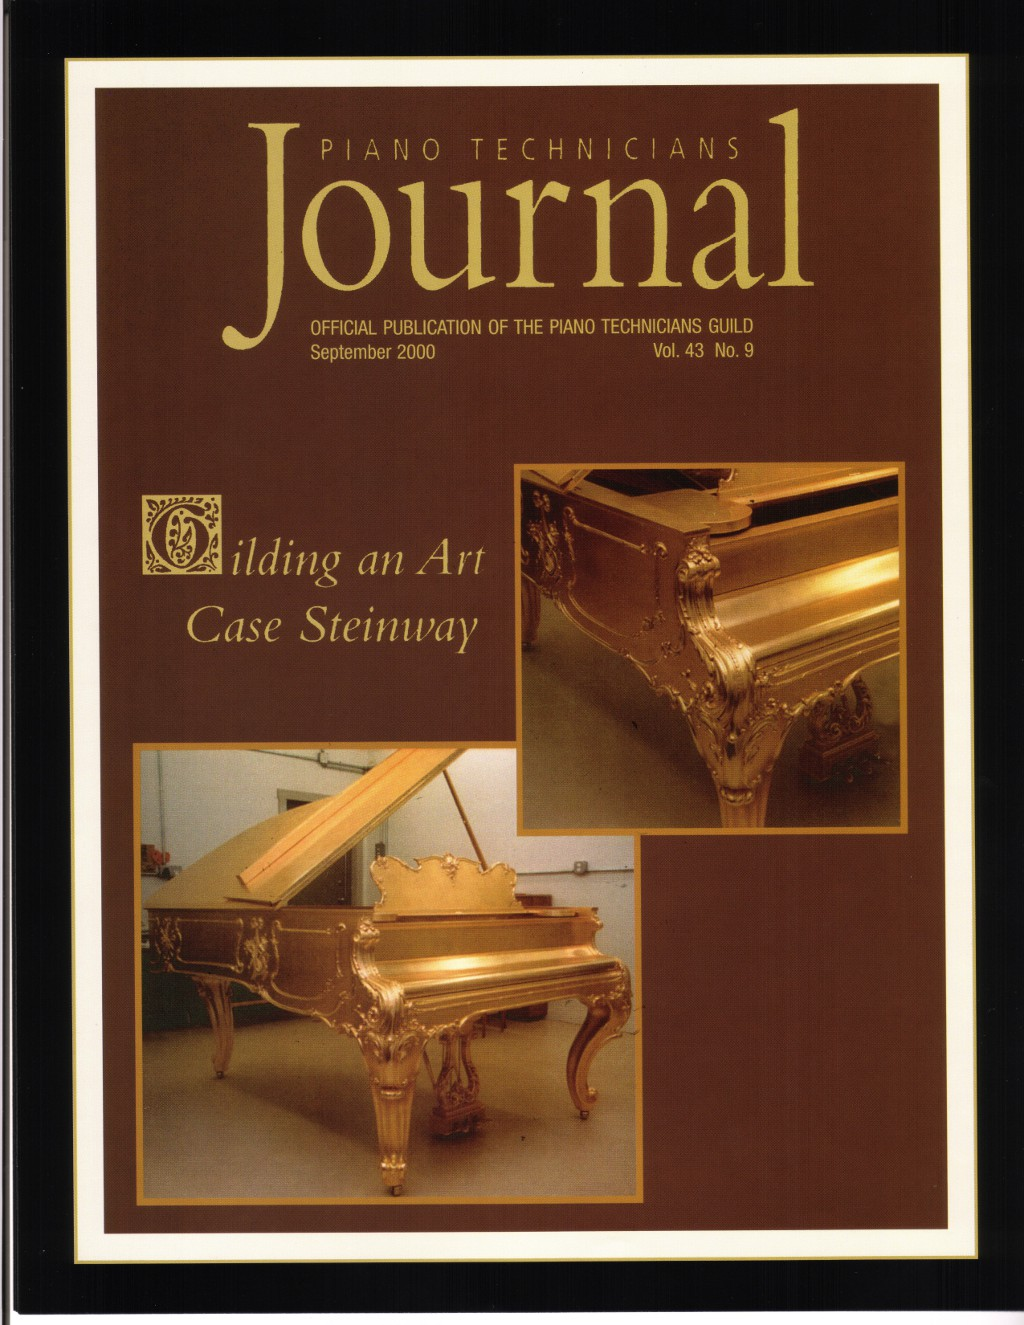 gold-piano-technician-journal